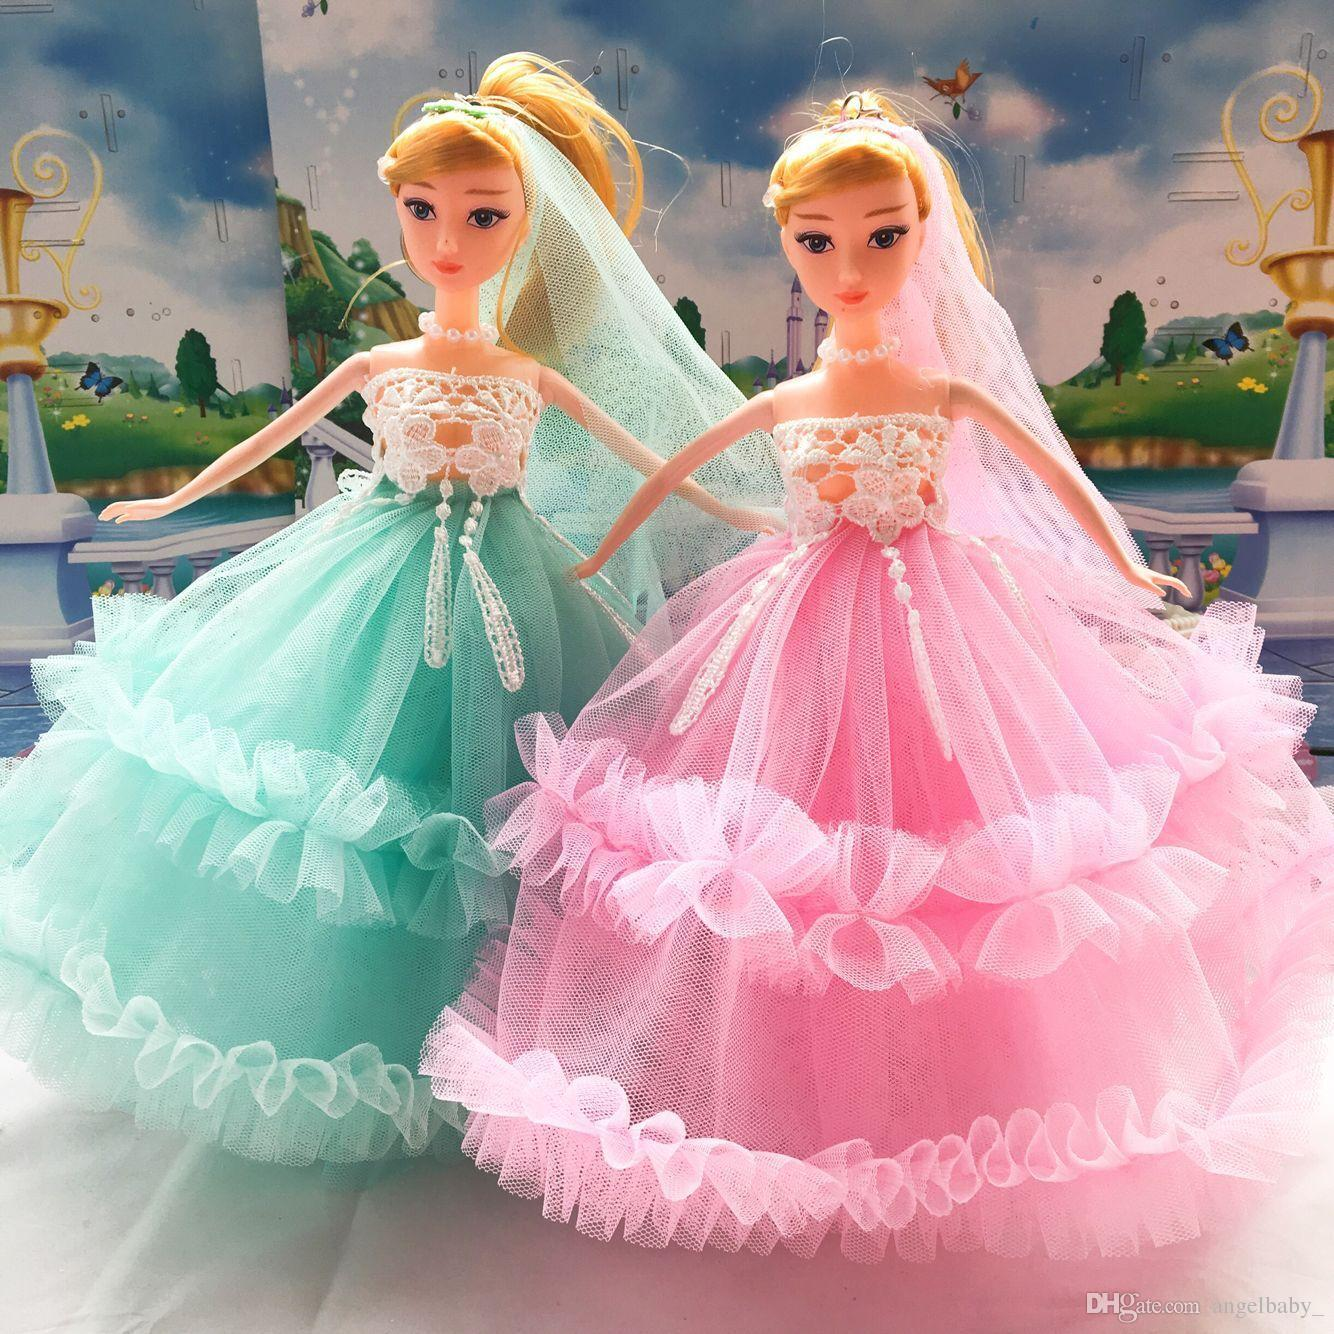 2017 New Girl Gifts Barbie Doll Wedding Dress Lace Birthday Present Creative Presents Clothes From Angelbaby 2262